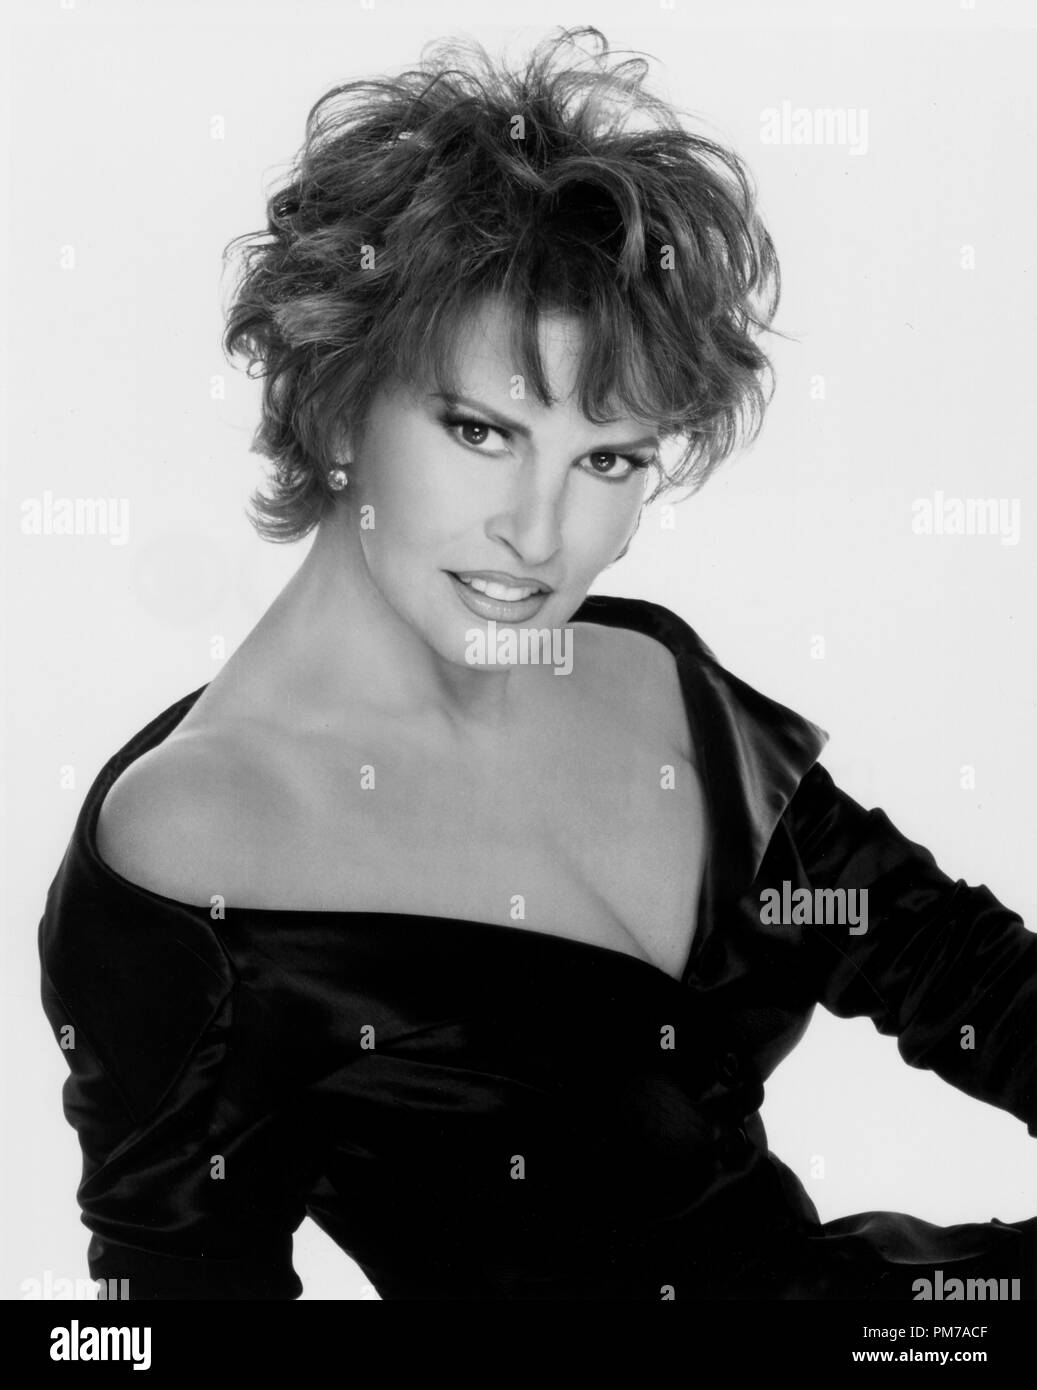 Film Still from 'Central Park West' Raquel Welch 1995   File Reference # 31042642THA  For Editorial Use Only - All Rights Reserved - Stock Image